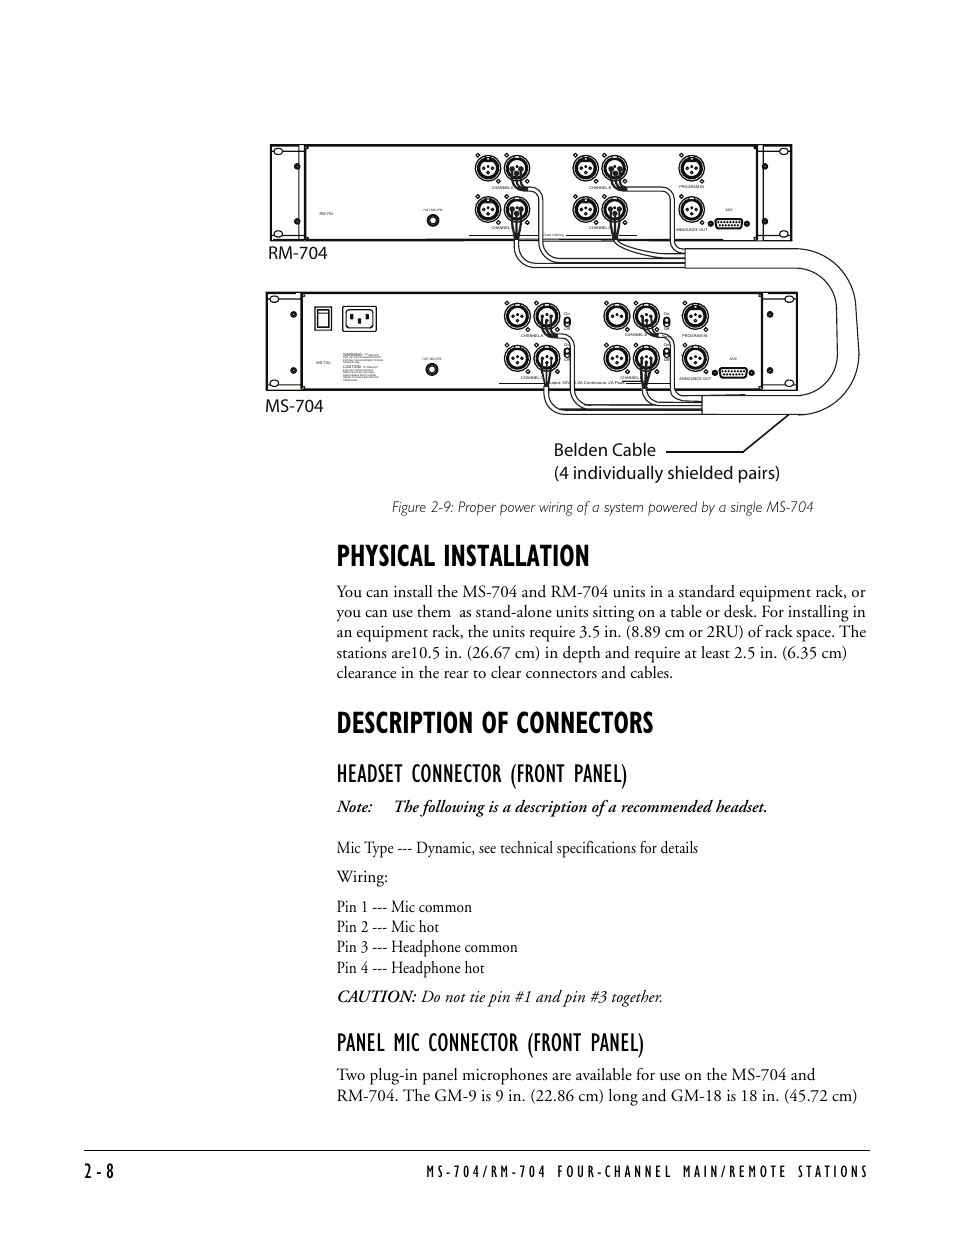 Clear Com 4 Pin Wiring Wire Center Headset Diagram Physical Installation Description Of Connectors Connector Rh Manualsdir 7 Review